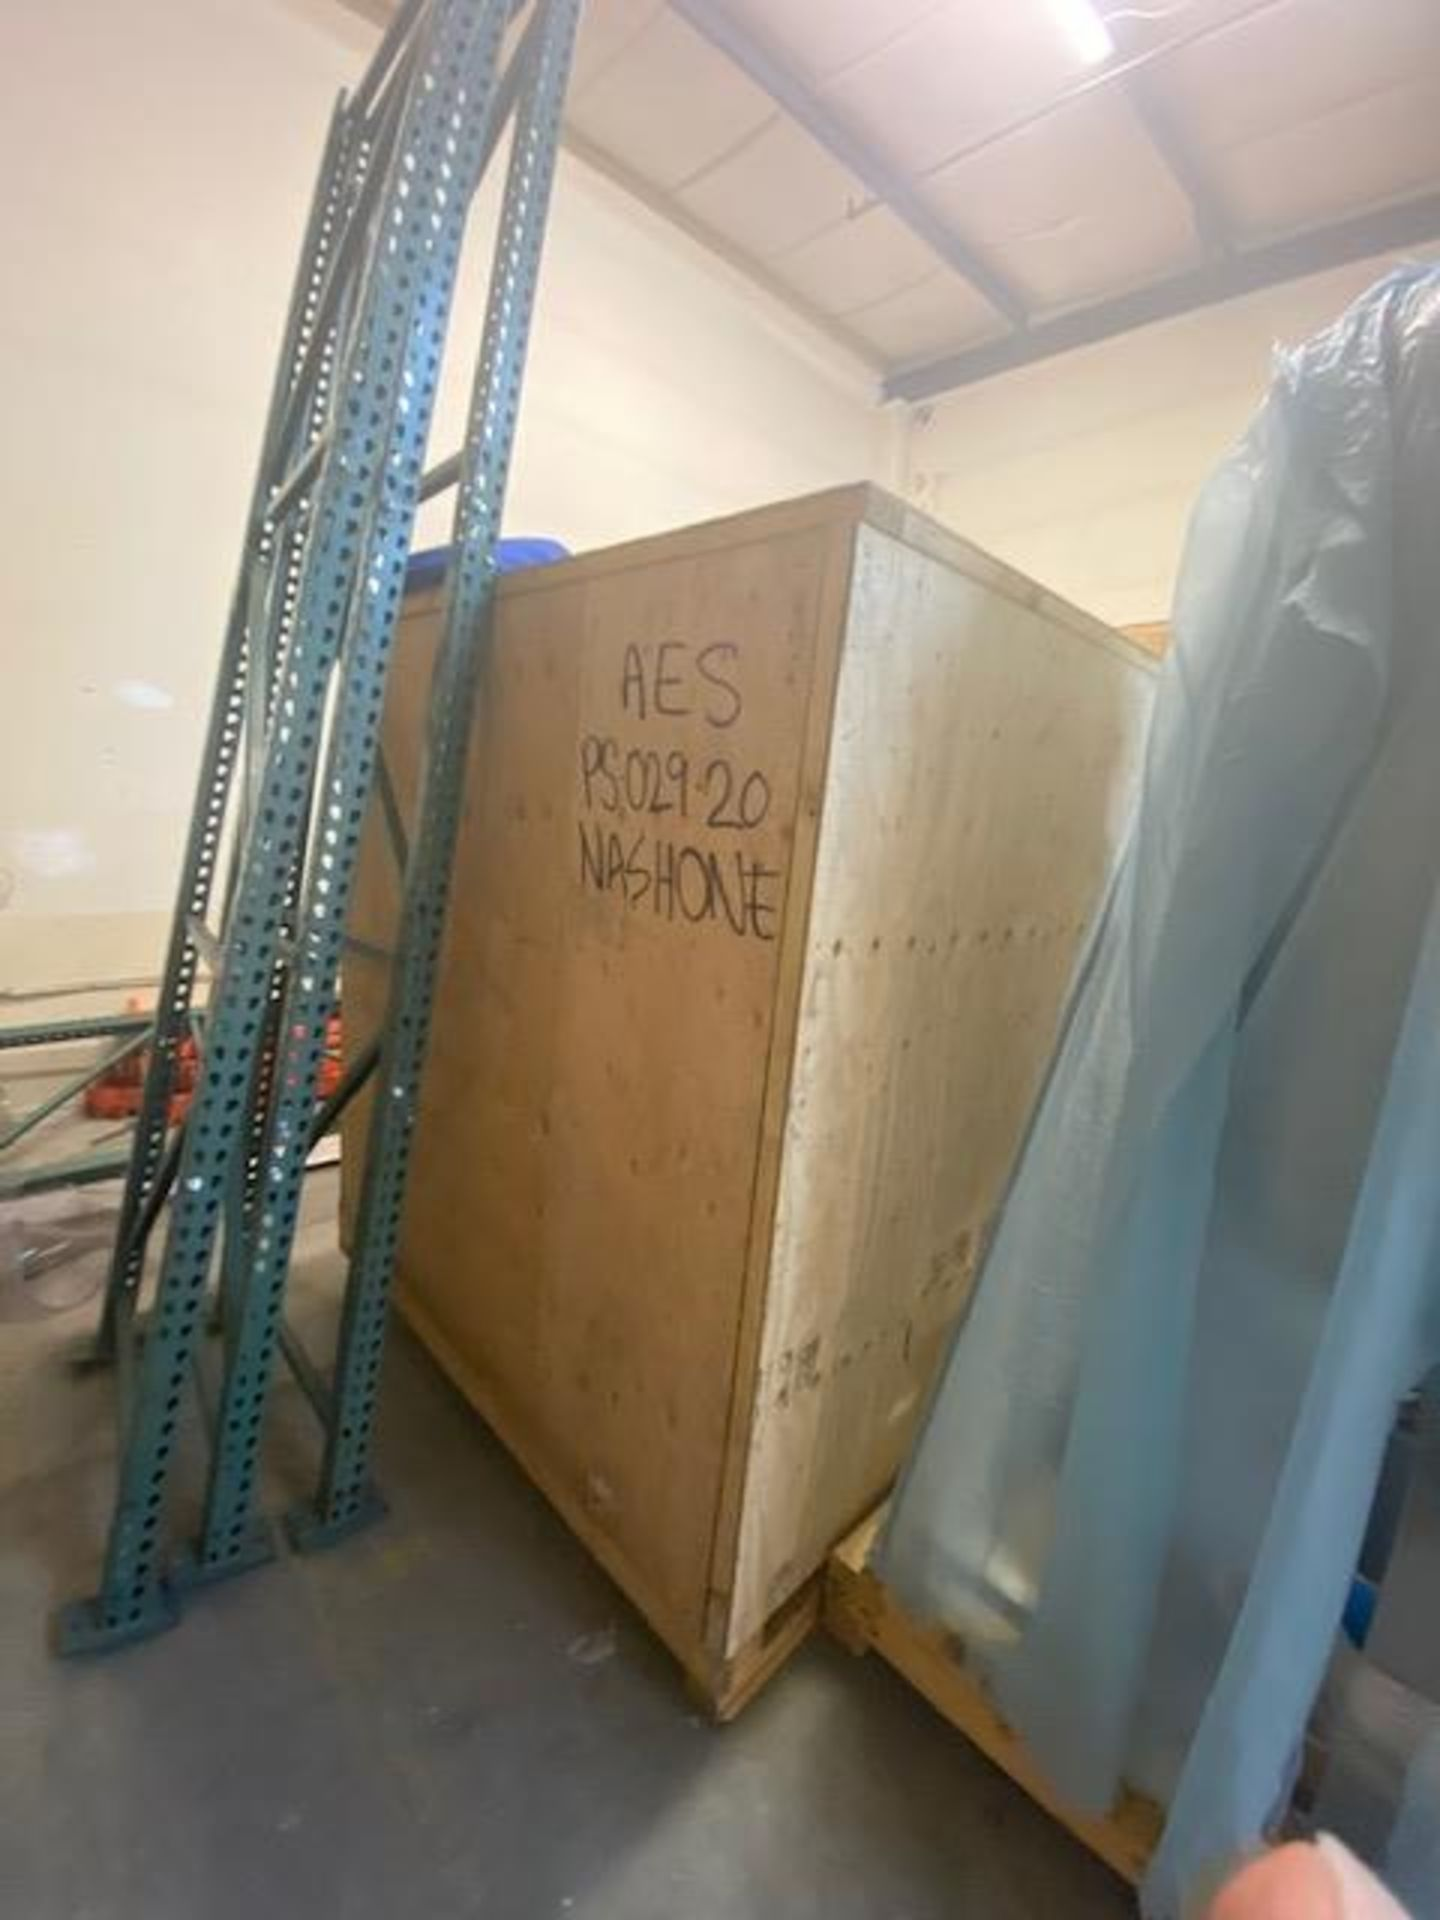 UNUSED/Still-In-Crate-Pinnacle Stainless Complete Extraction Bundle - Image 12 of 14